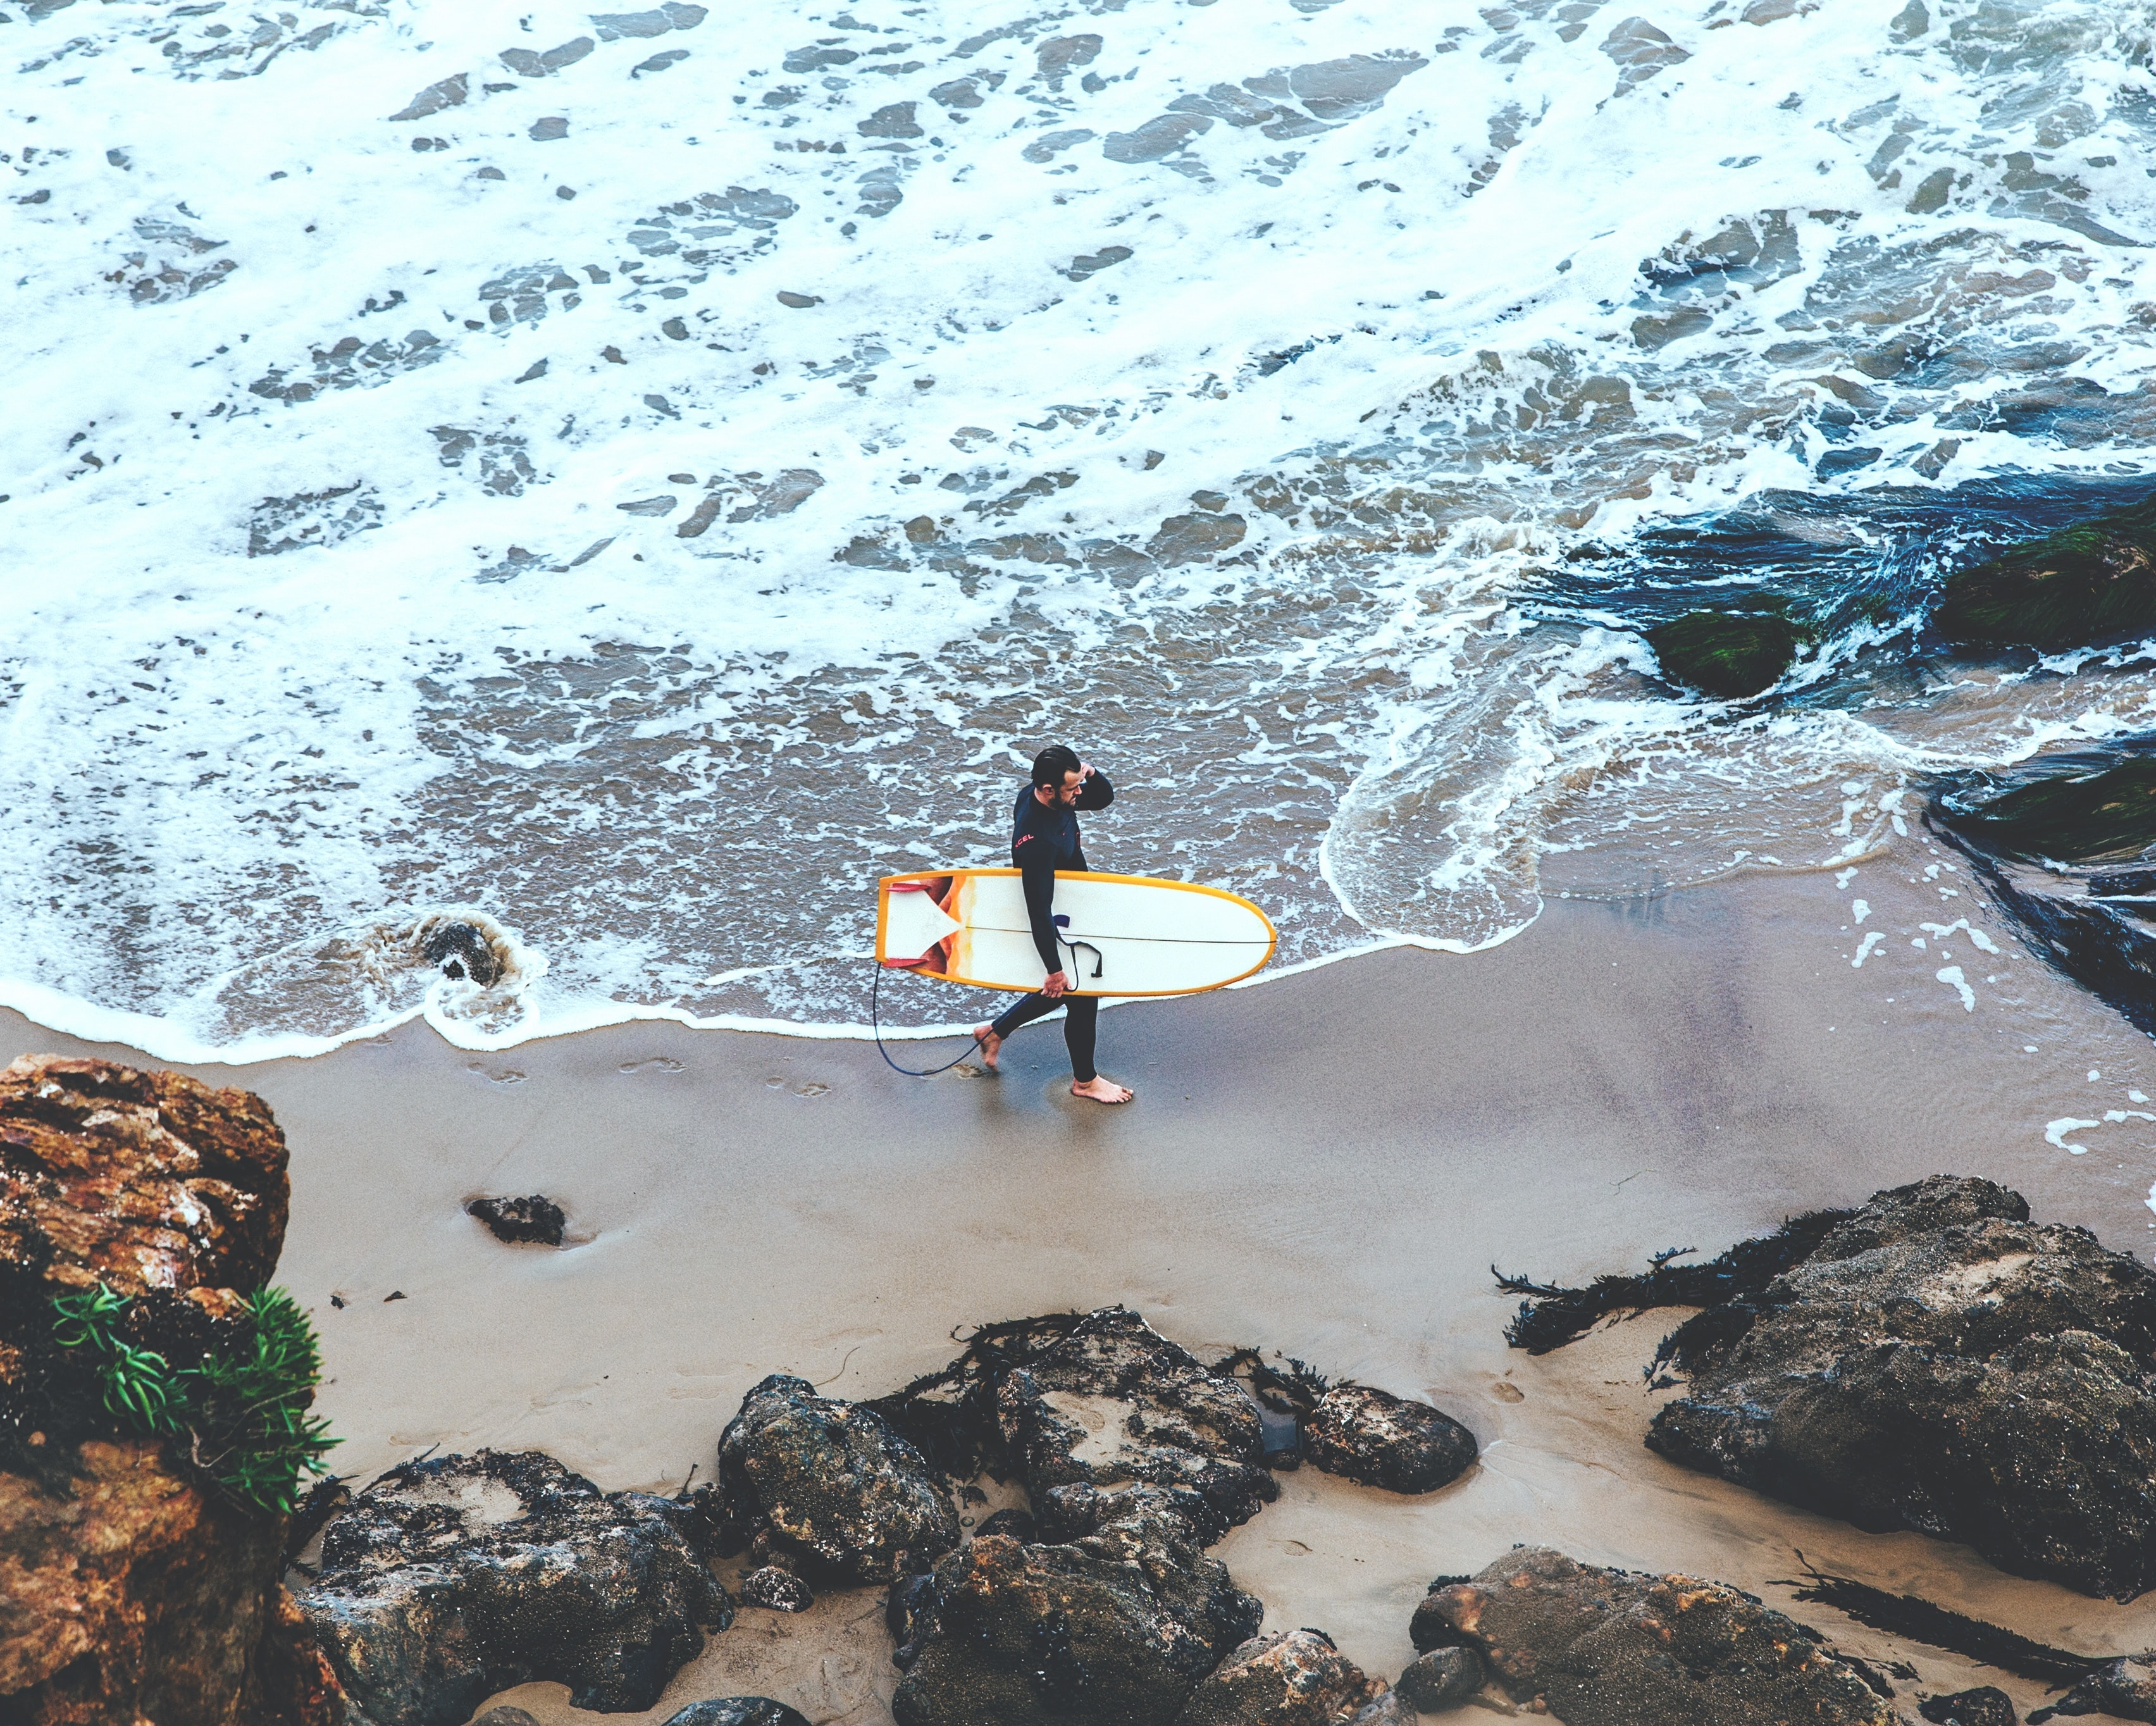 A shot of a surfer carrying a white board along a small bay, taken from above as waves lap the shore at Point Dume